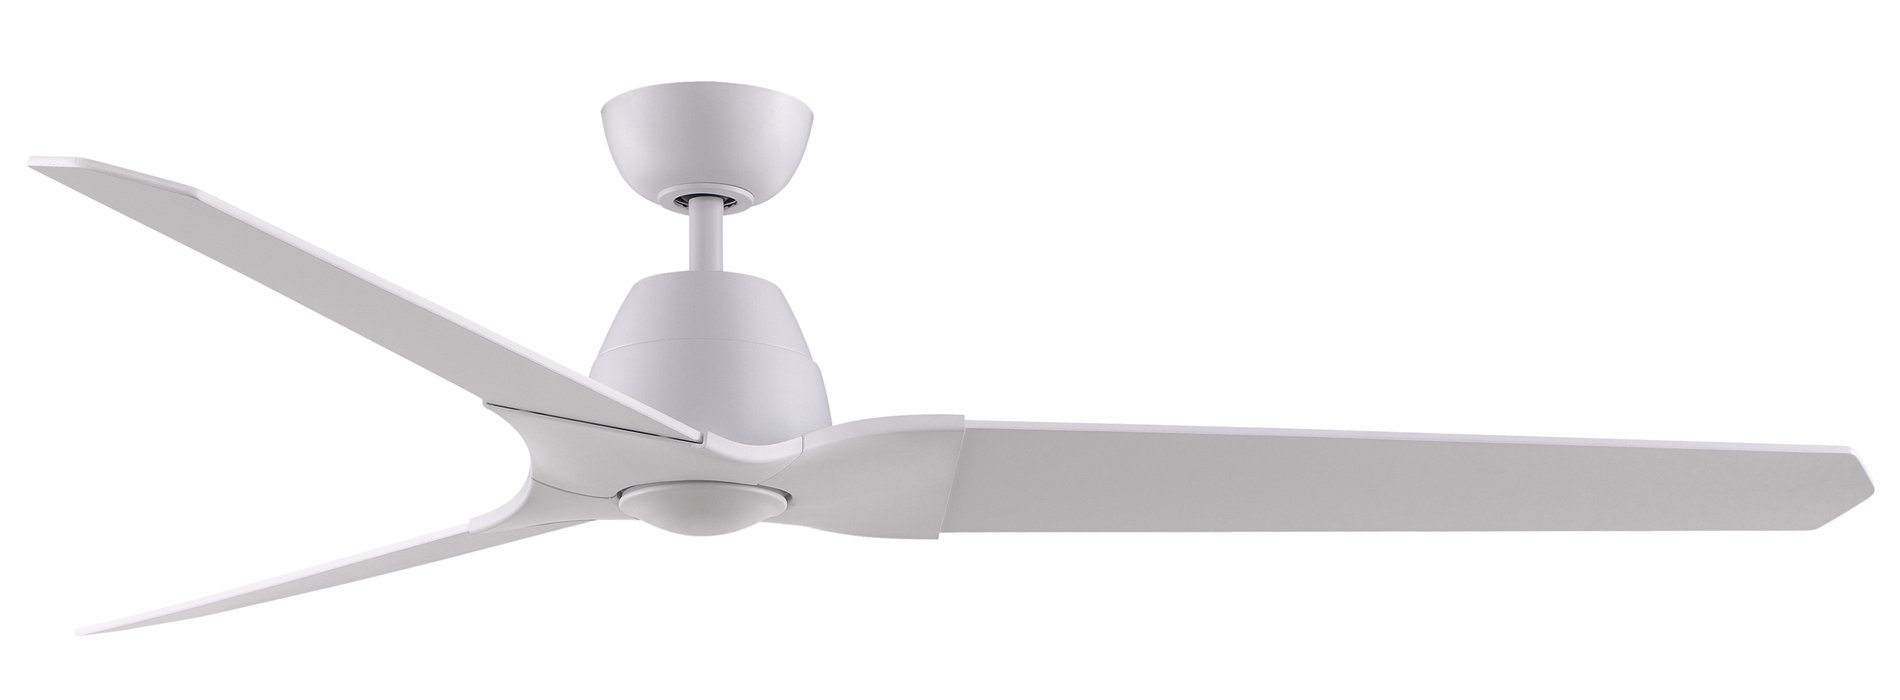 Dc Motor Ceiling Fans: Zoom,Lighting